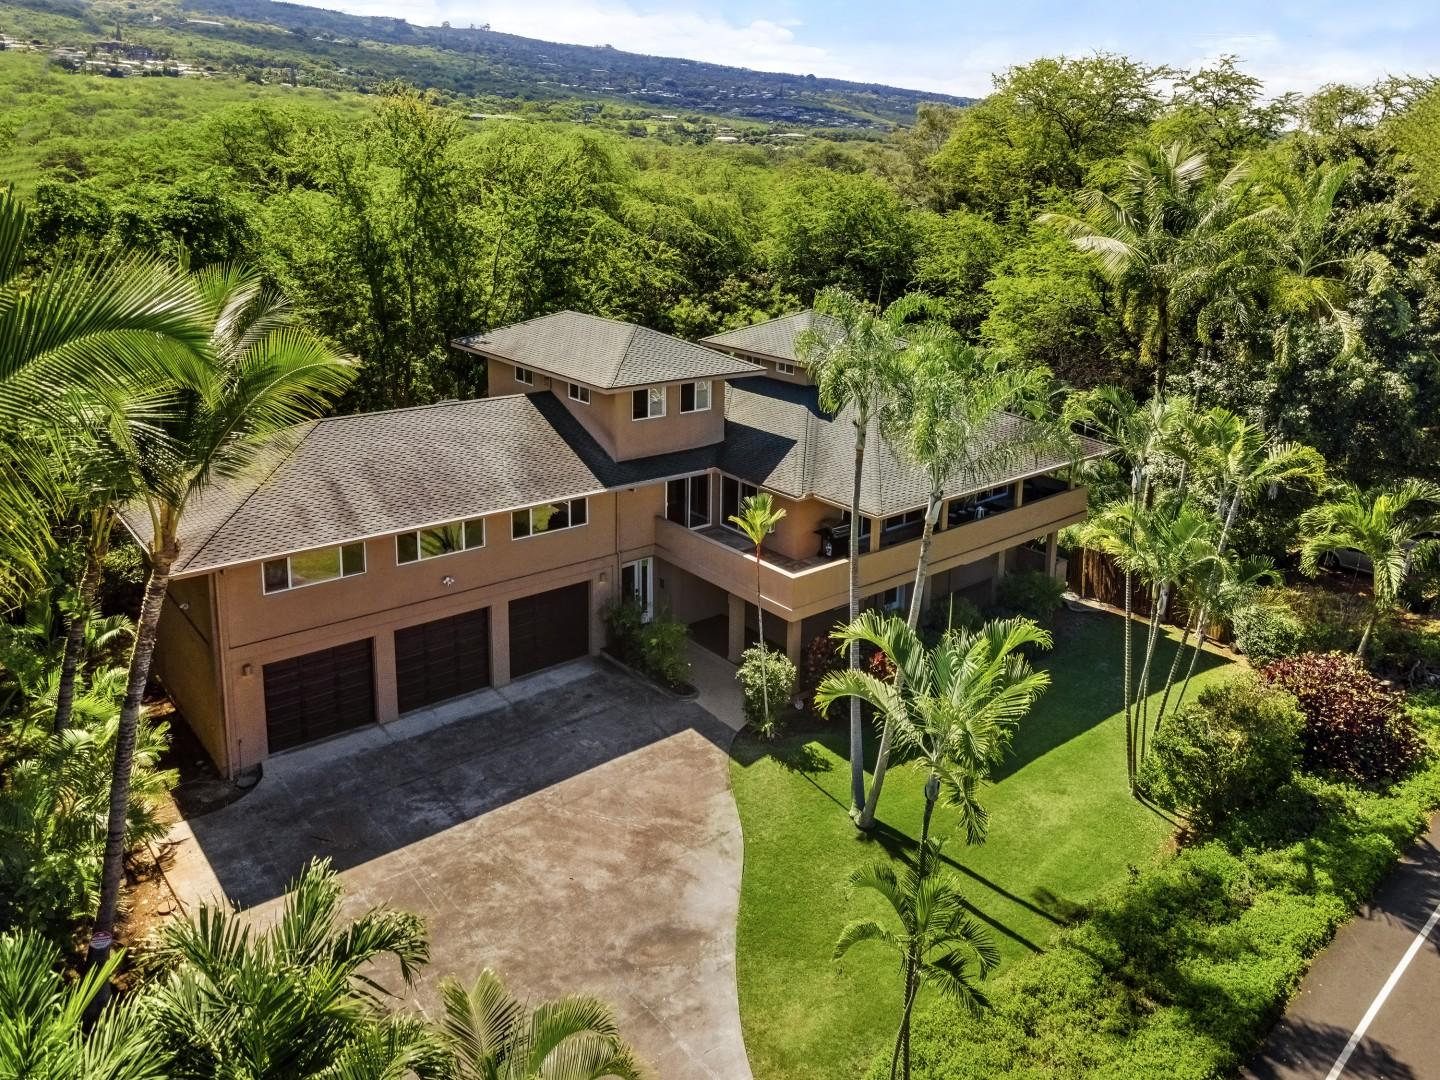 Aerial views of the home